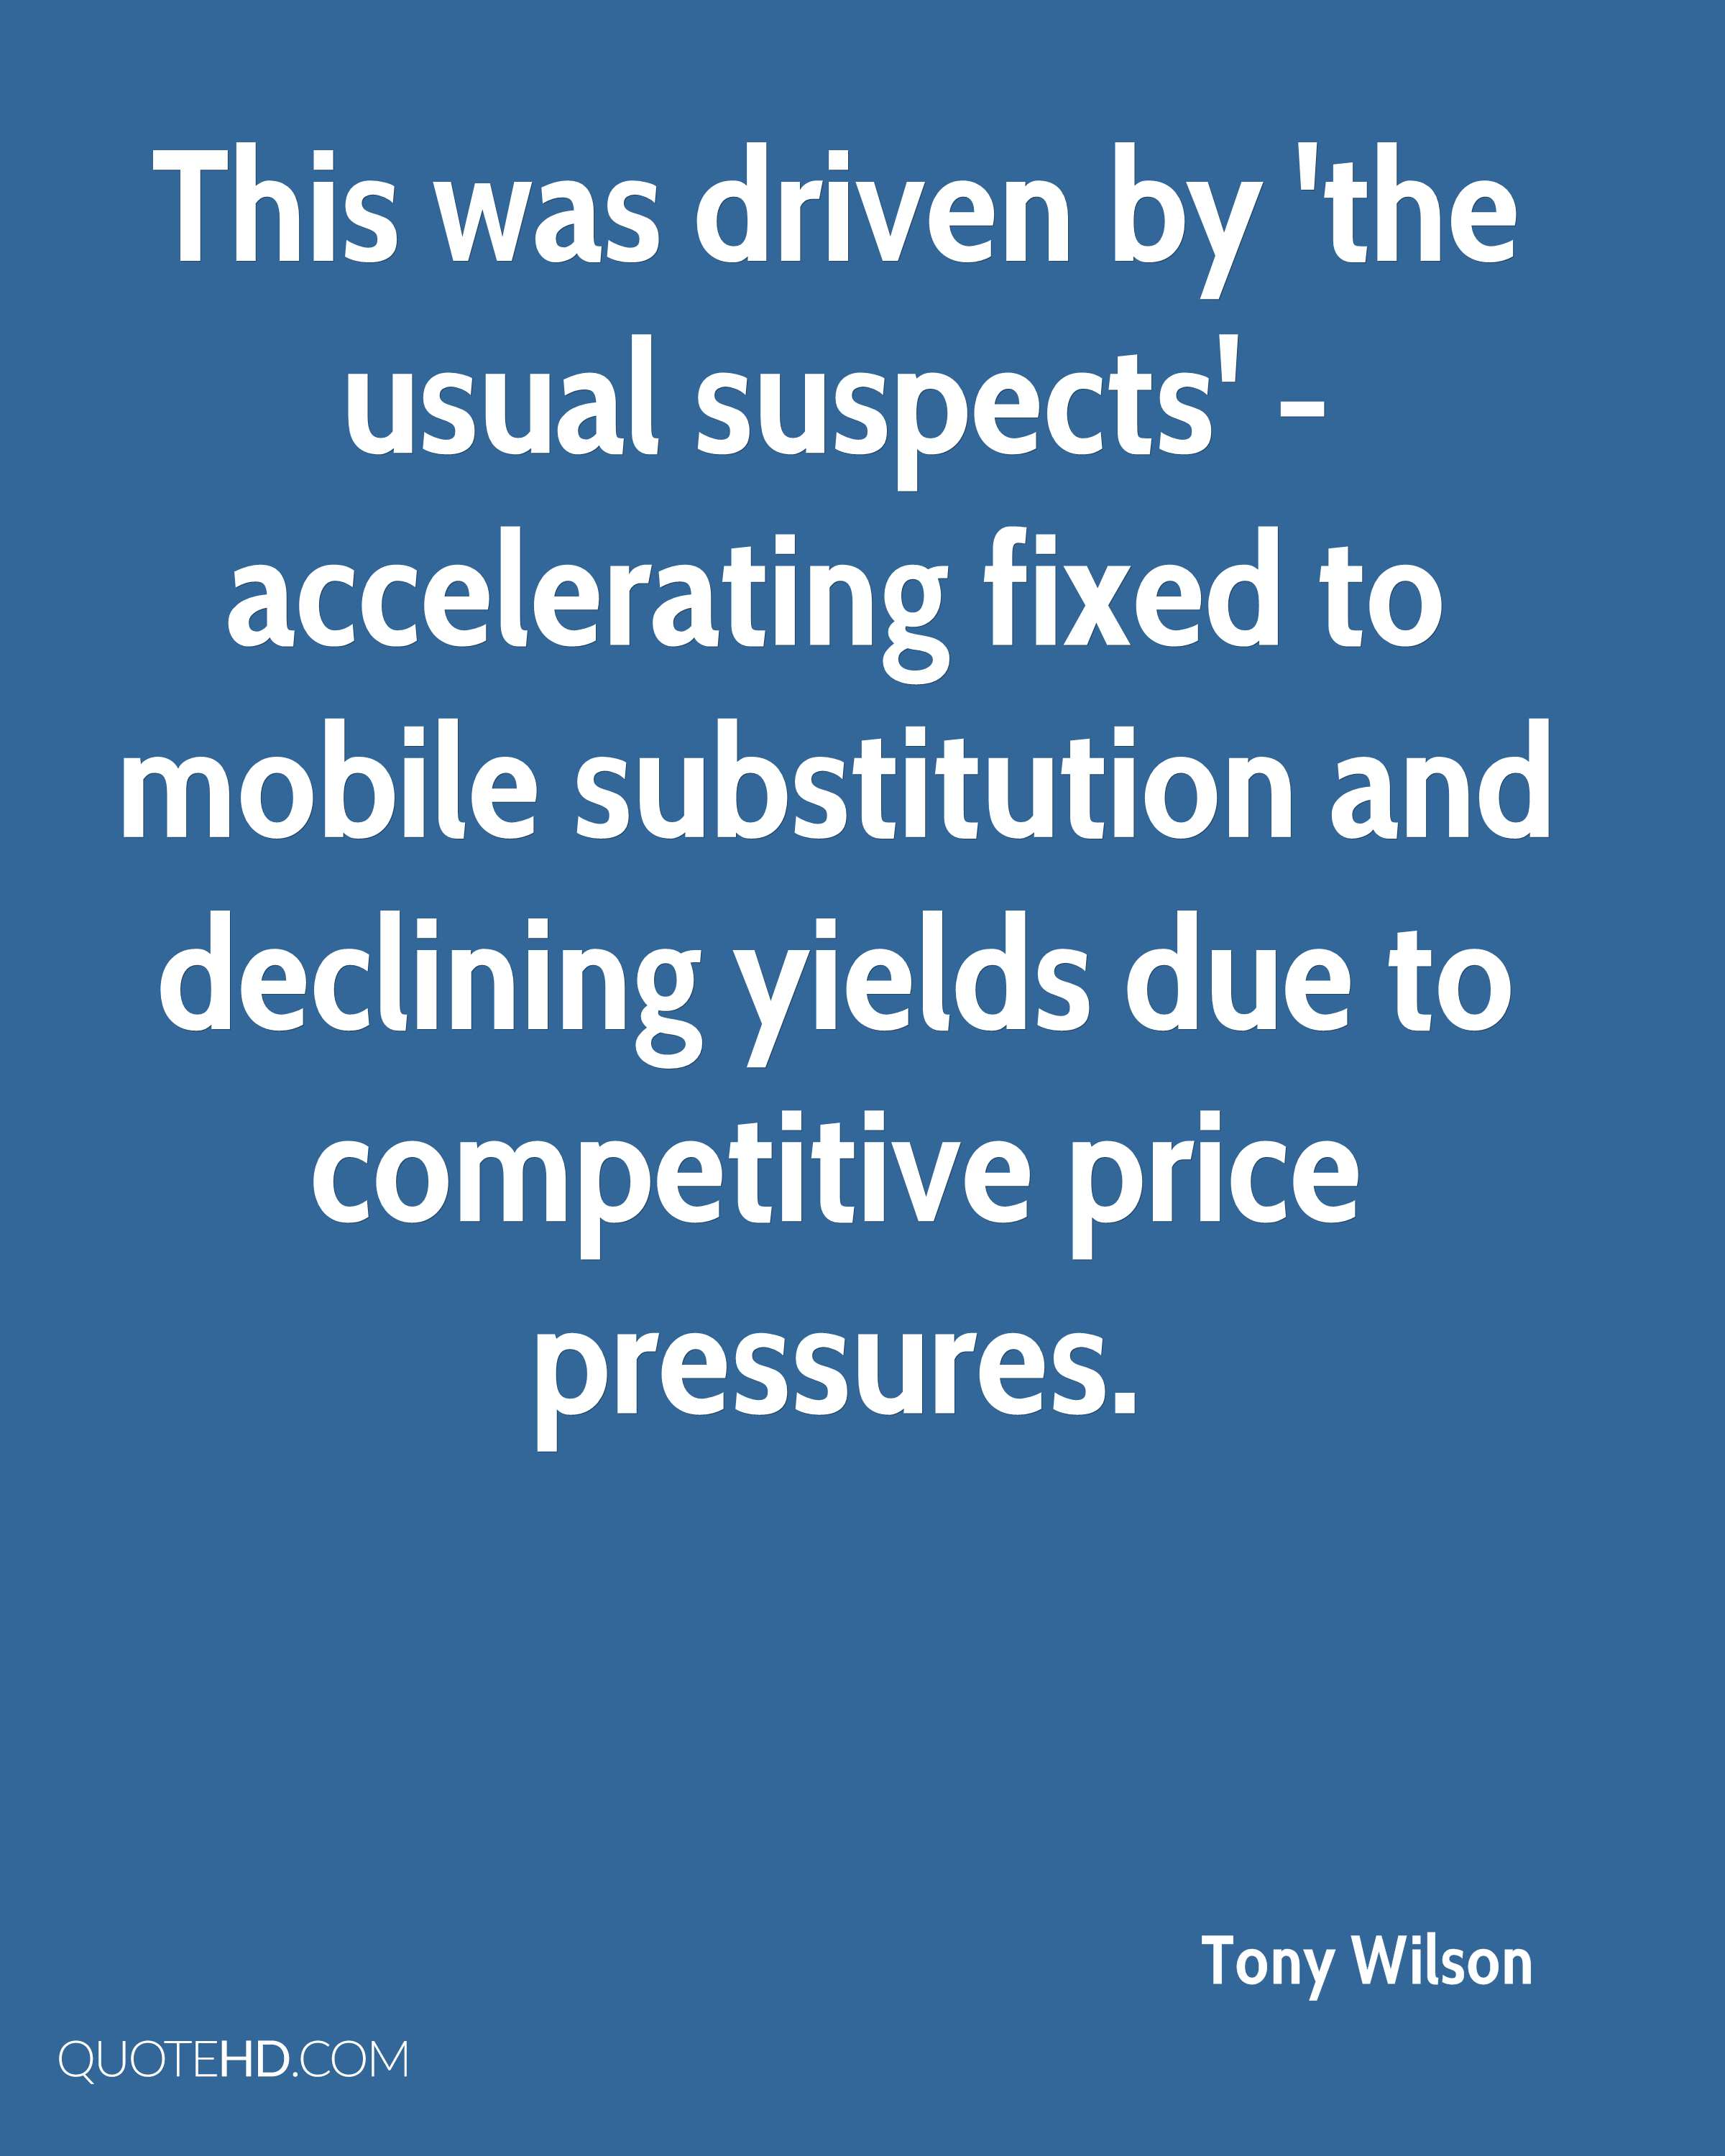 This was driven by 'the usual suspects' - accelerating fixed to mobile substitution and declining yields due to competitive price pressures.